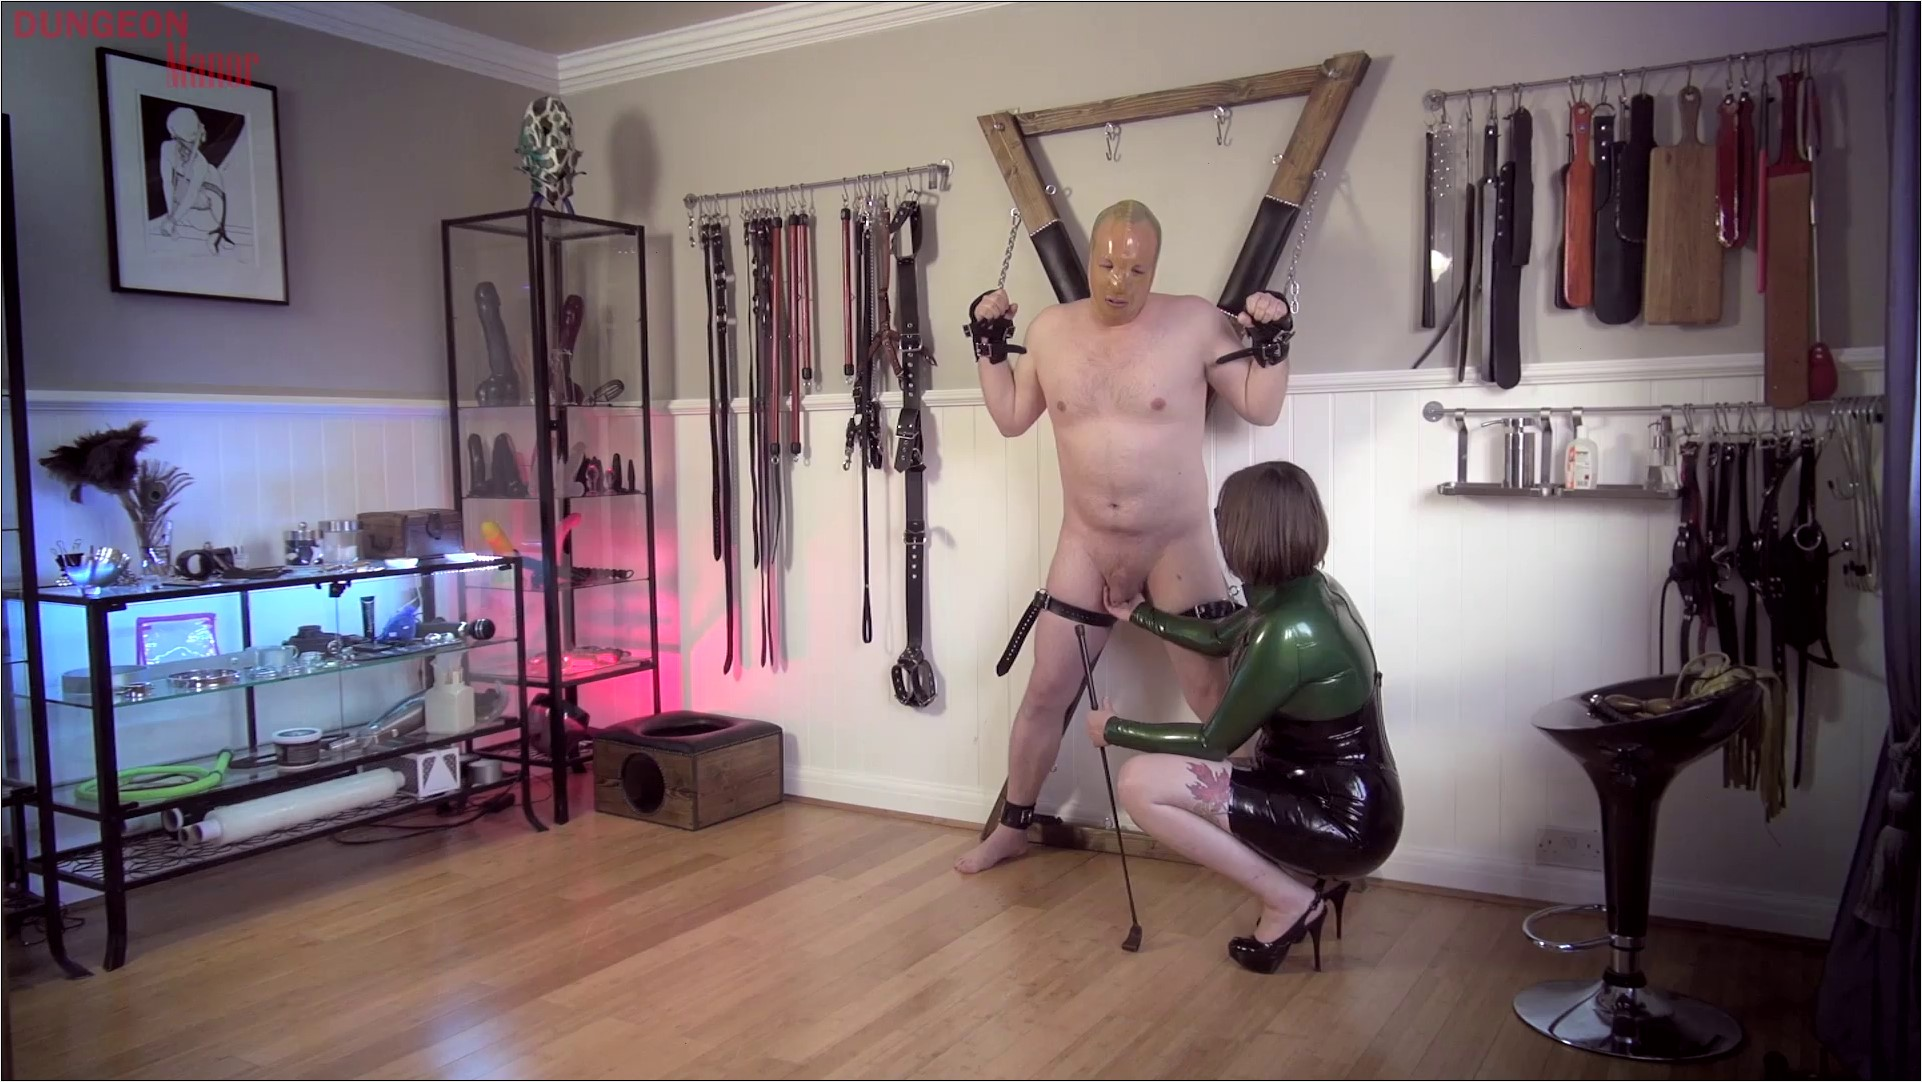 A dungeon Manor Production 428 - MISTRESS EVILYNE - FULL HD/1080p/MP4